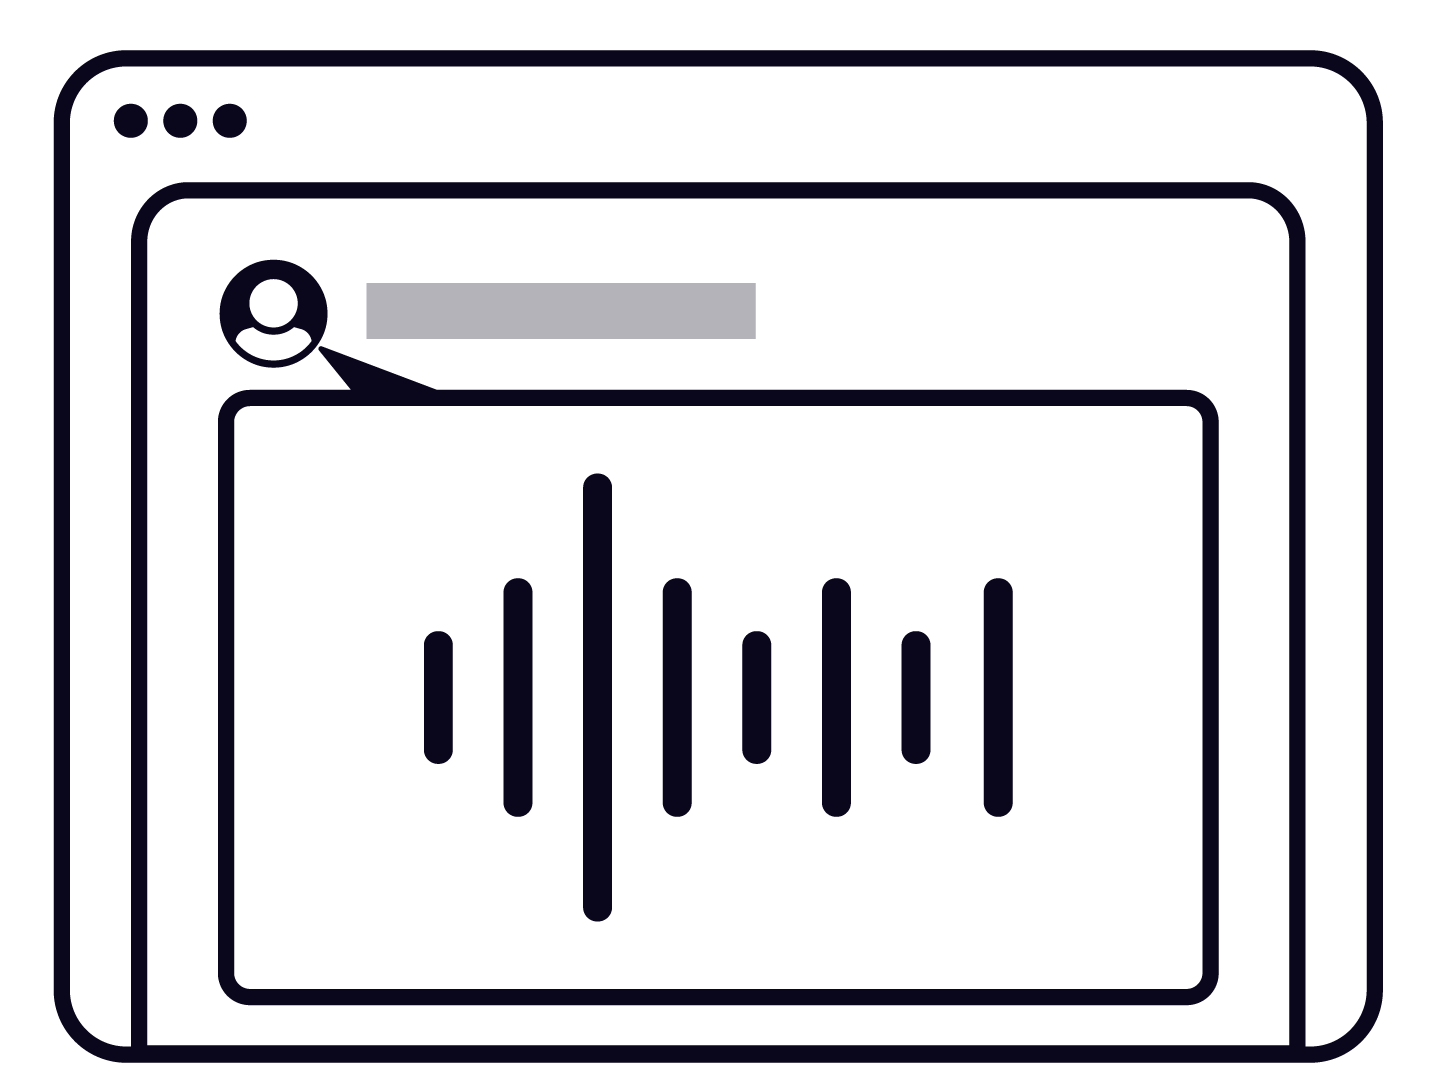 An expanded modal box, which conveys the concept of listening to a recording of someone else's voice.